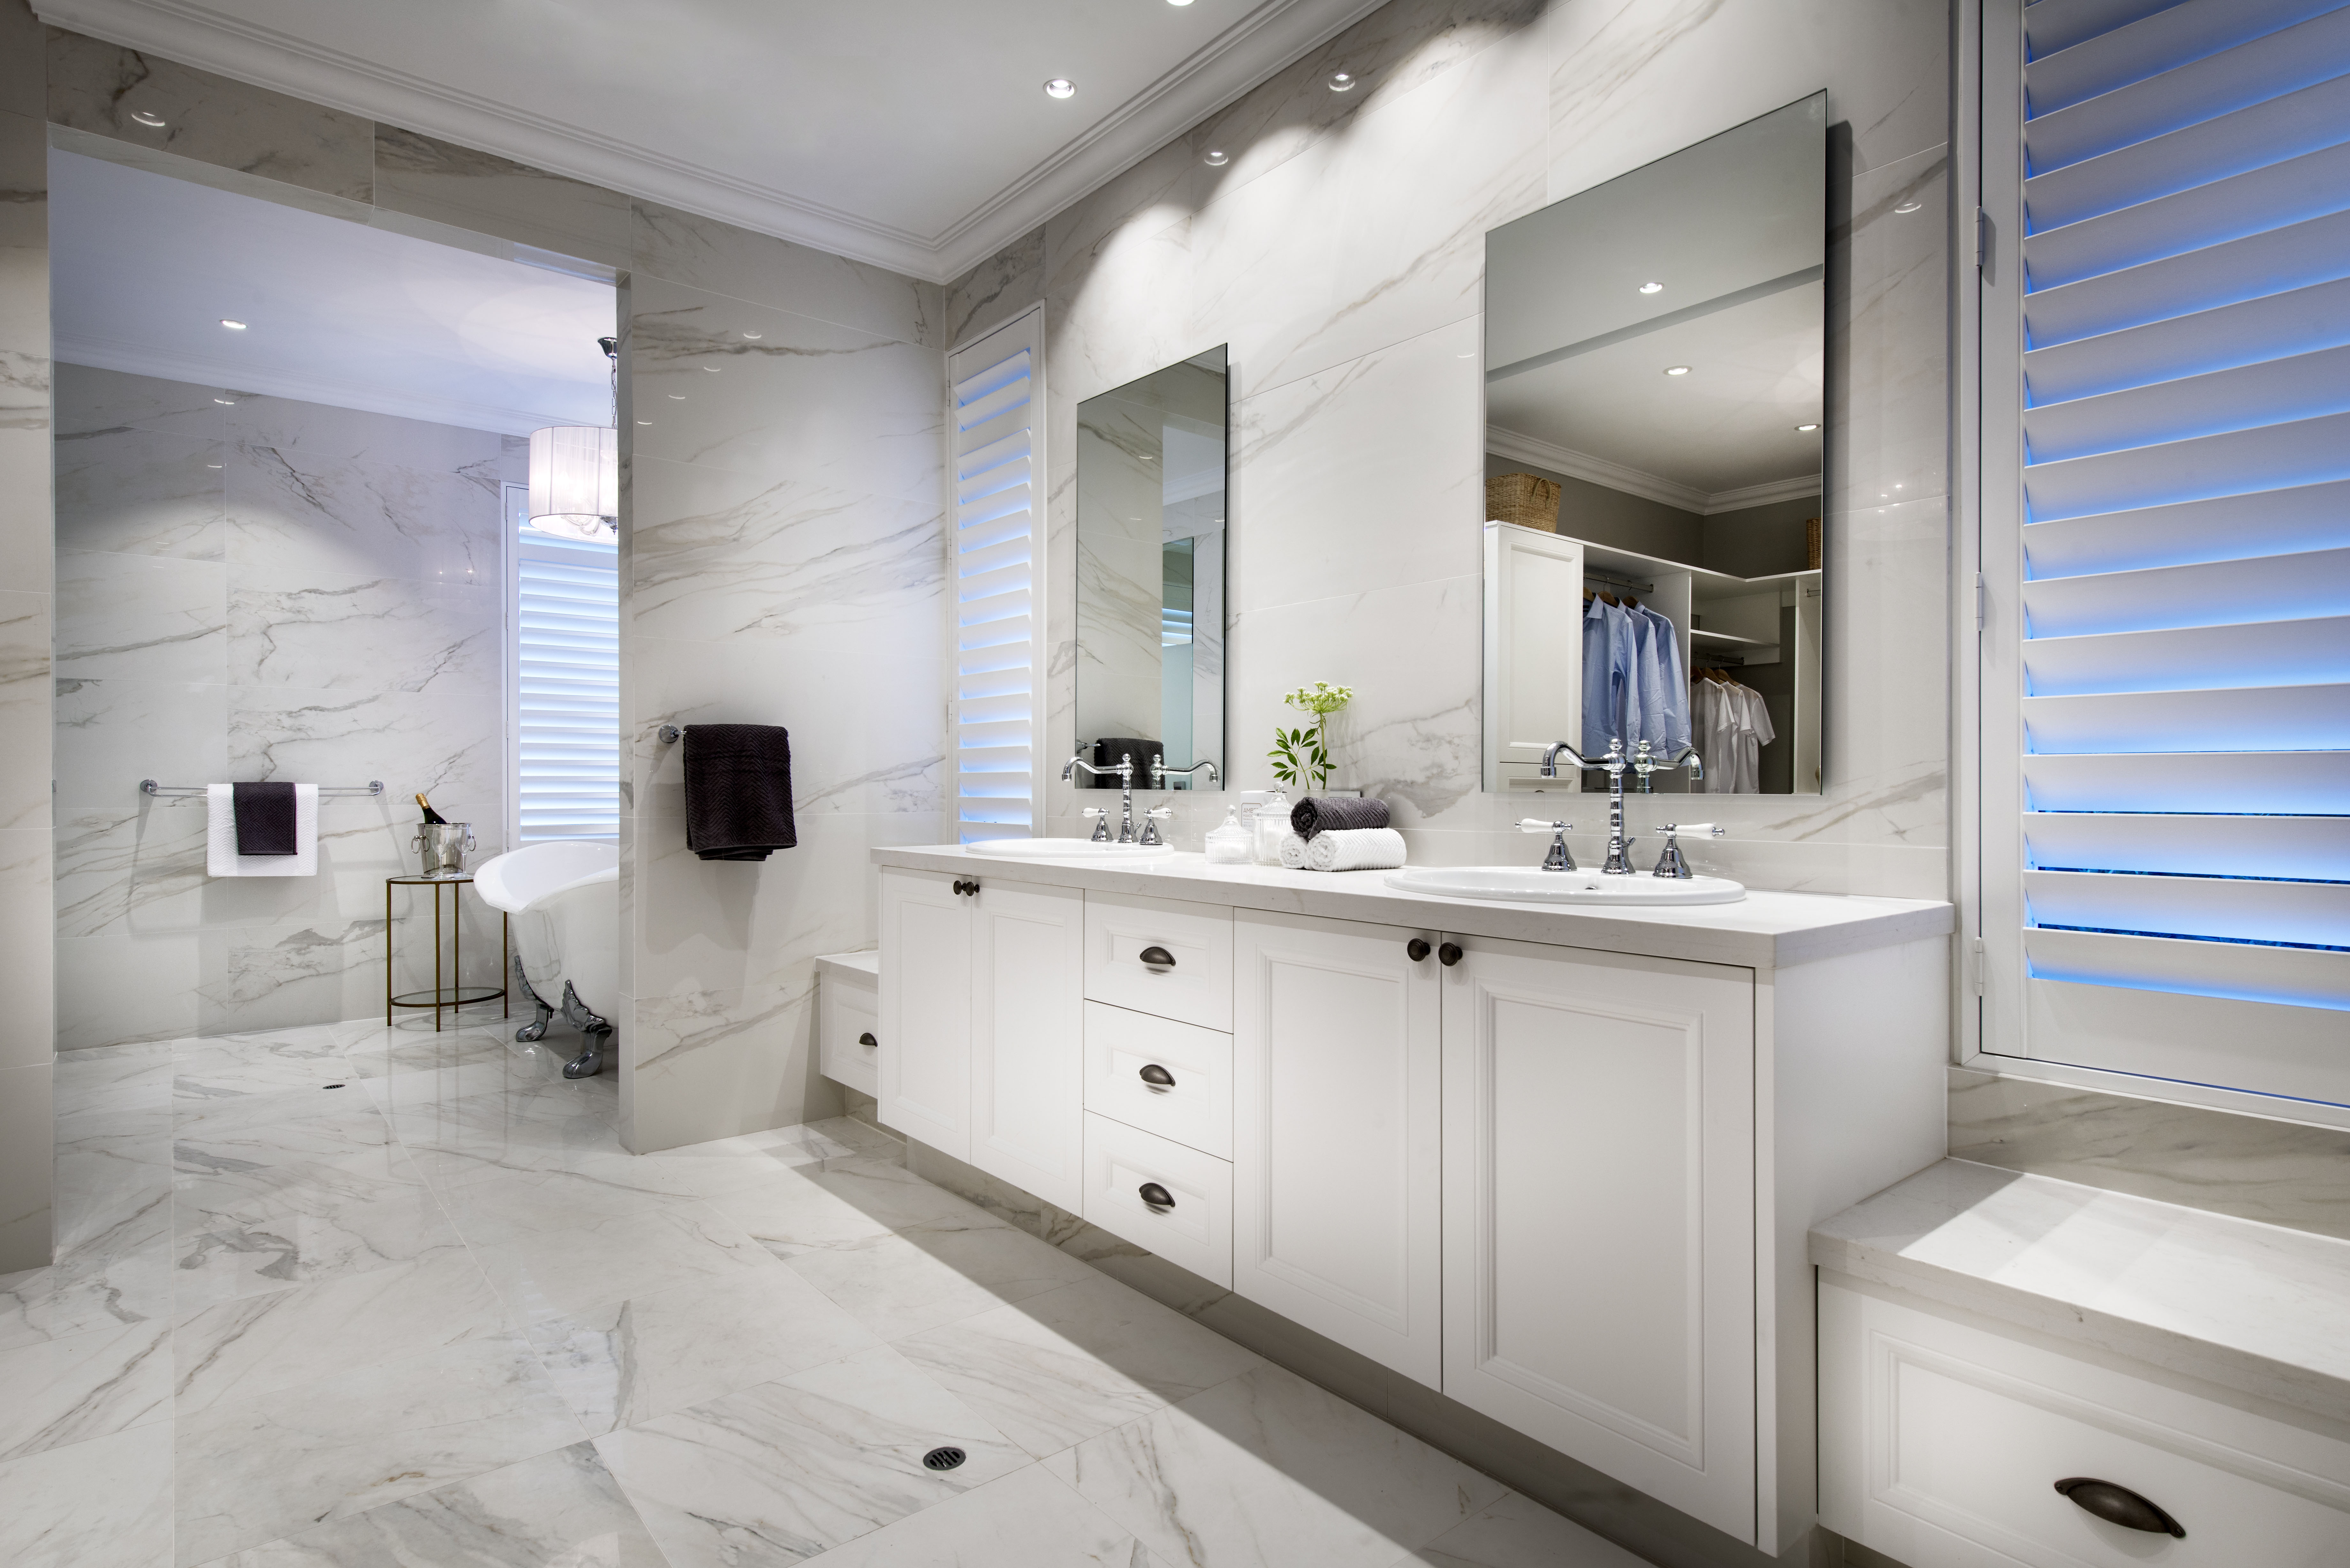 Off the primary bedroom is the enormous primary bathroom, separated into three sections. Shown here is the vanity with his-and-hers sinks, dual laundry baskets, and the separate room with a claw-foot bathtub.